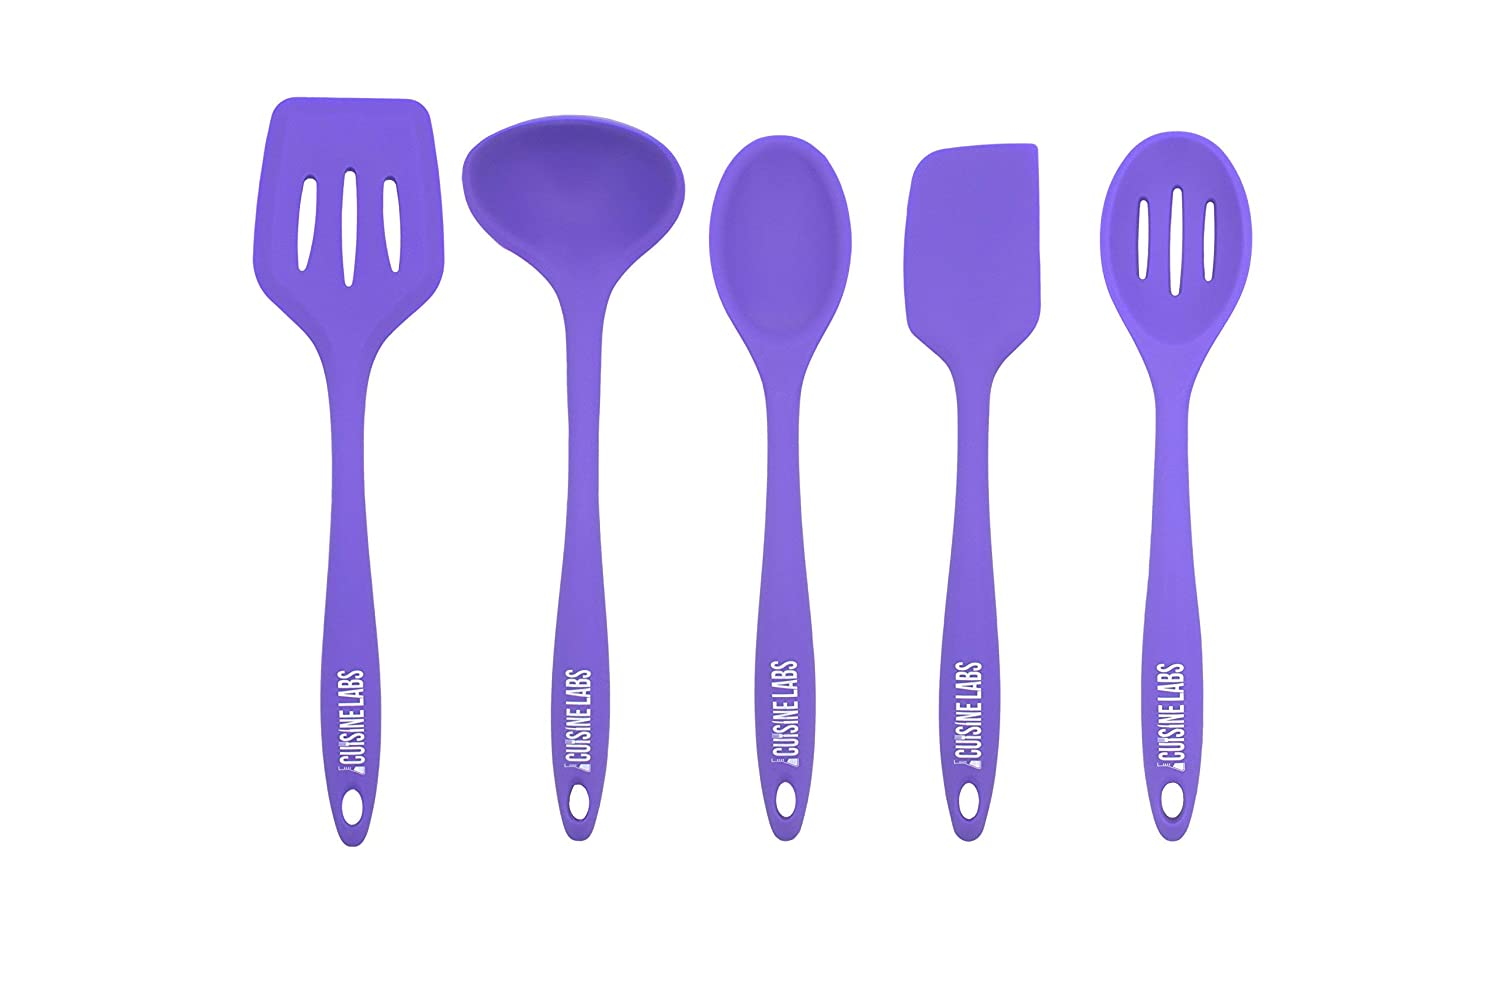 Heat Resistant 1 Spatula FDA Approved materials. 1 Slotted Spoon 1 Turner BPA Free 1 Ladle 5-Piece Silicone Kitchen Utensils Set by Cuisine Labs 1 Spoon